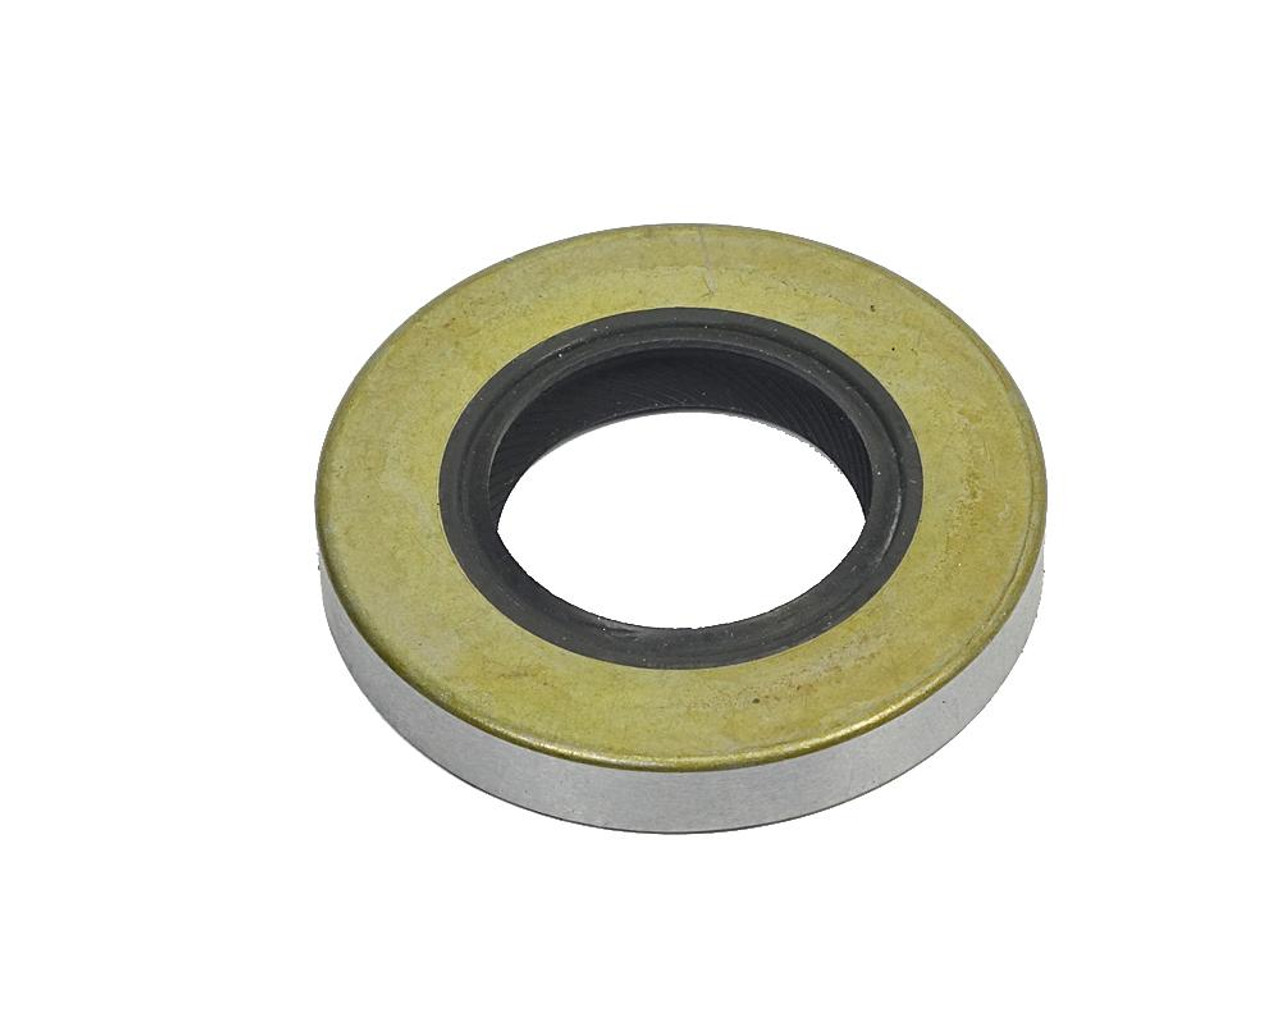 Differential Oil Seal - 1978-85